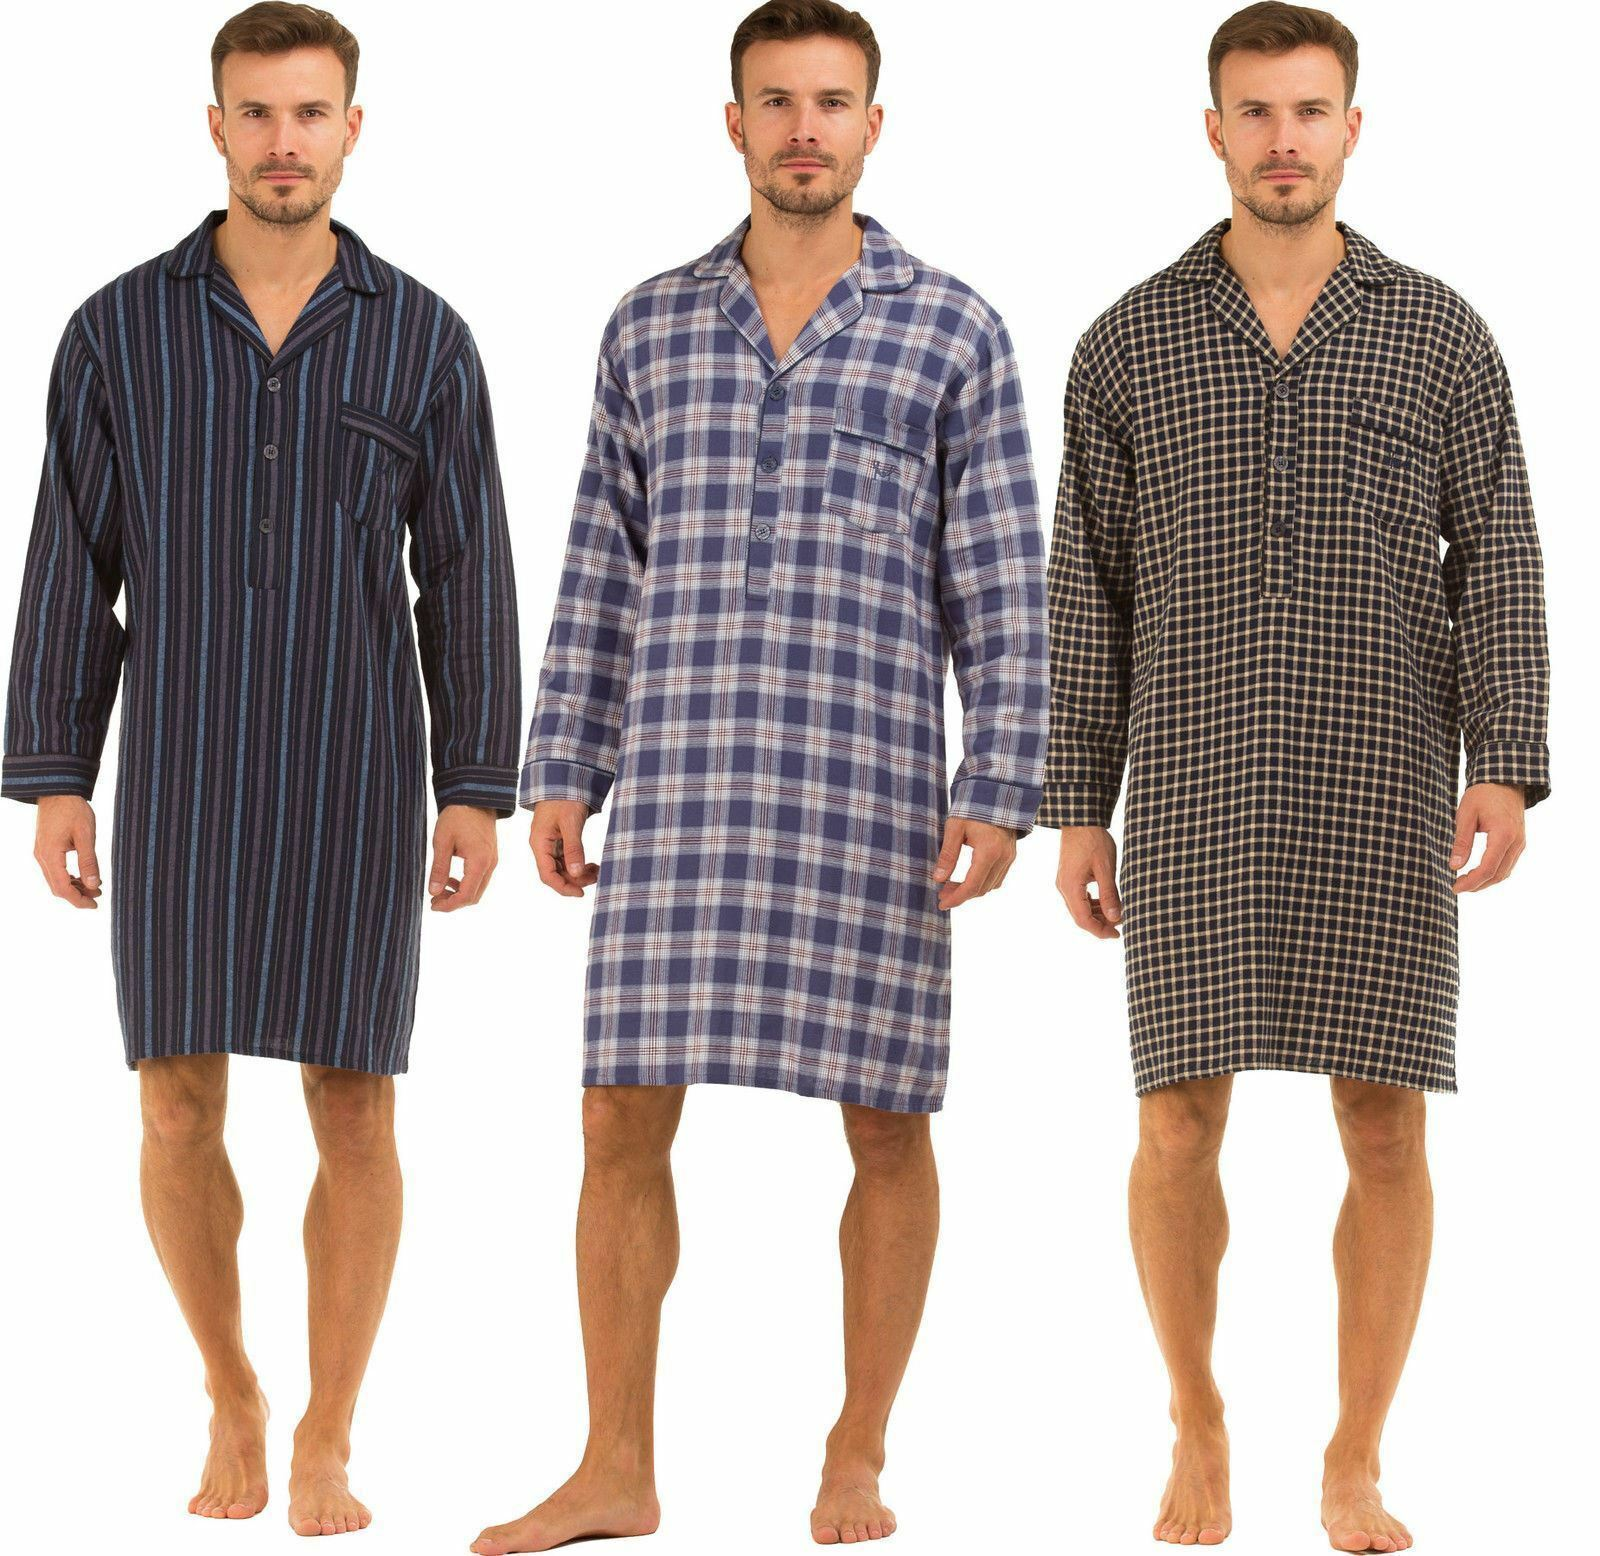 Mens Haigman Nightwear BRUSHED 100% Cotton 7394 Nightshirt  daa63cc7f